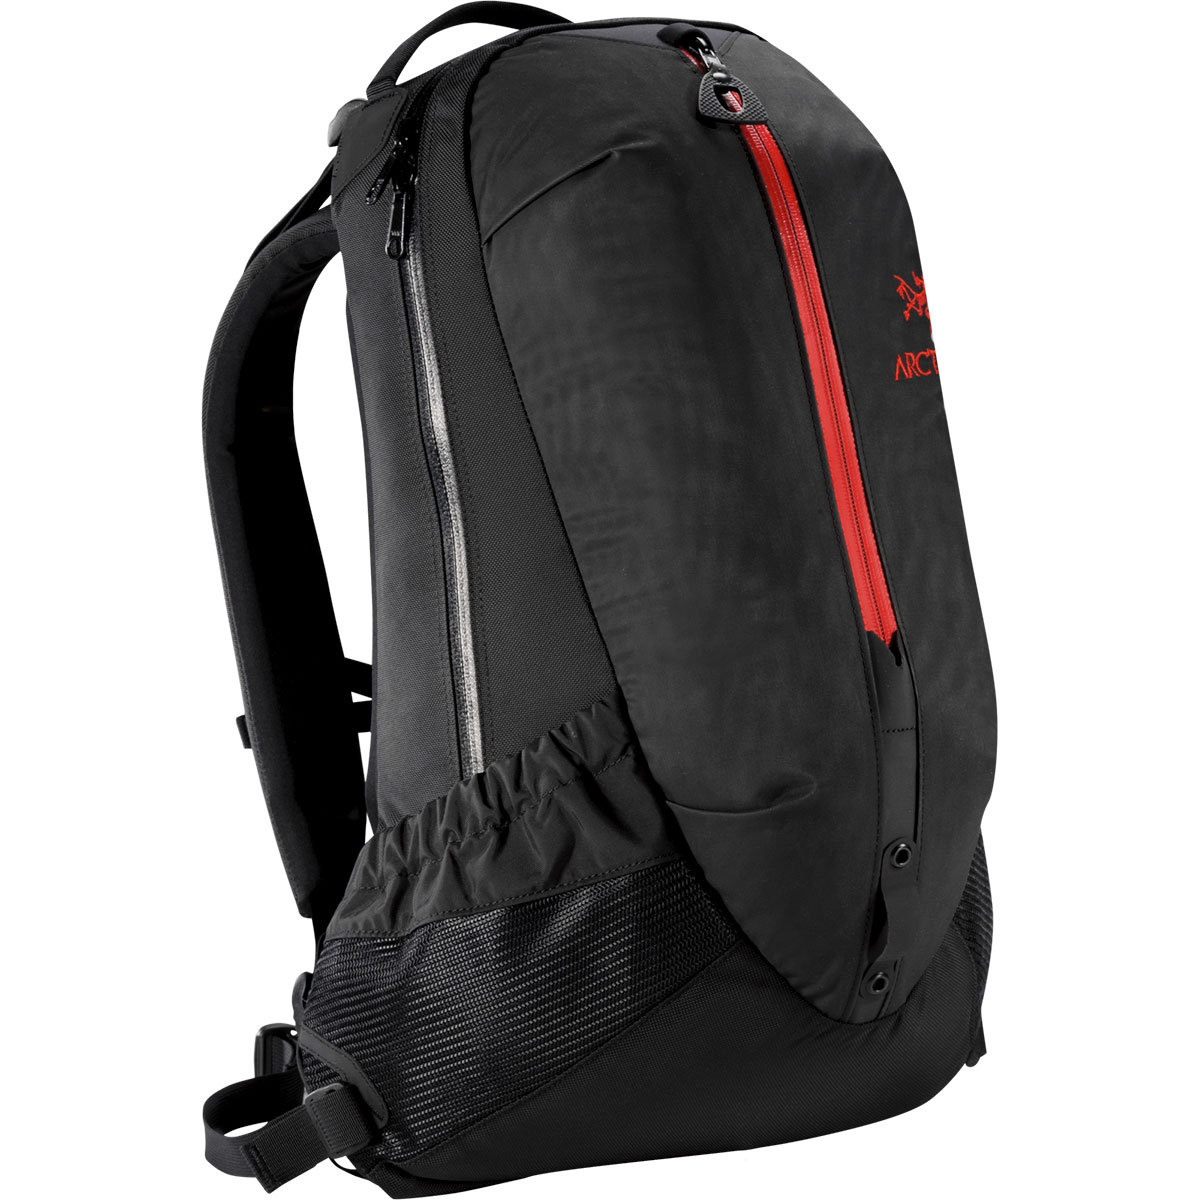 Arc'teryx Arro 22 Backpack, discontinued colors (free ground shipping) :: Daypacks and Small Backpacks :: Carriers :: Moontrail